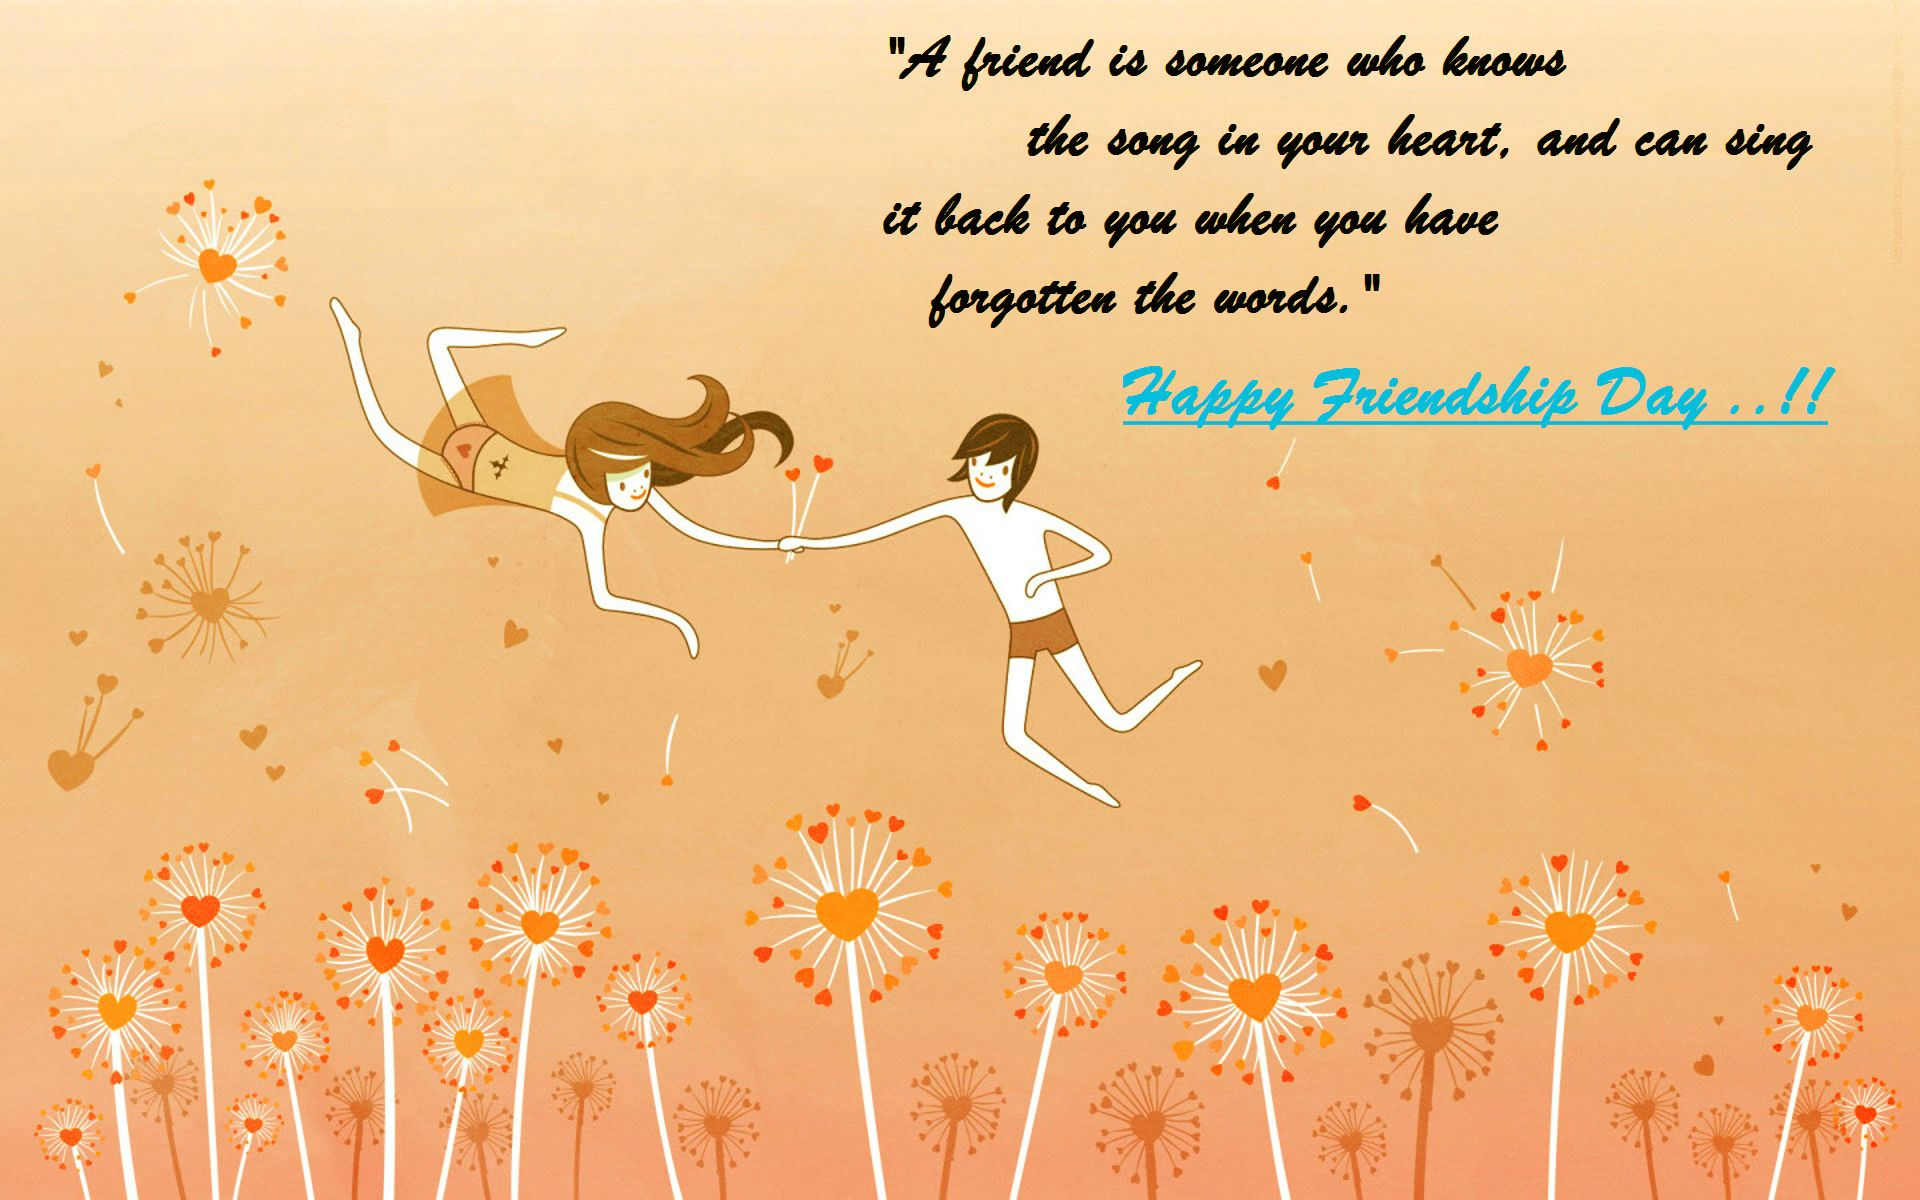 Happy Friendship Day Quotes Thoughts Wallpaper Friendship Day Quotes Happy Friendship Day Happy Friendship Day Quotes